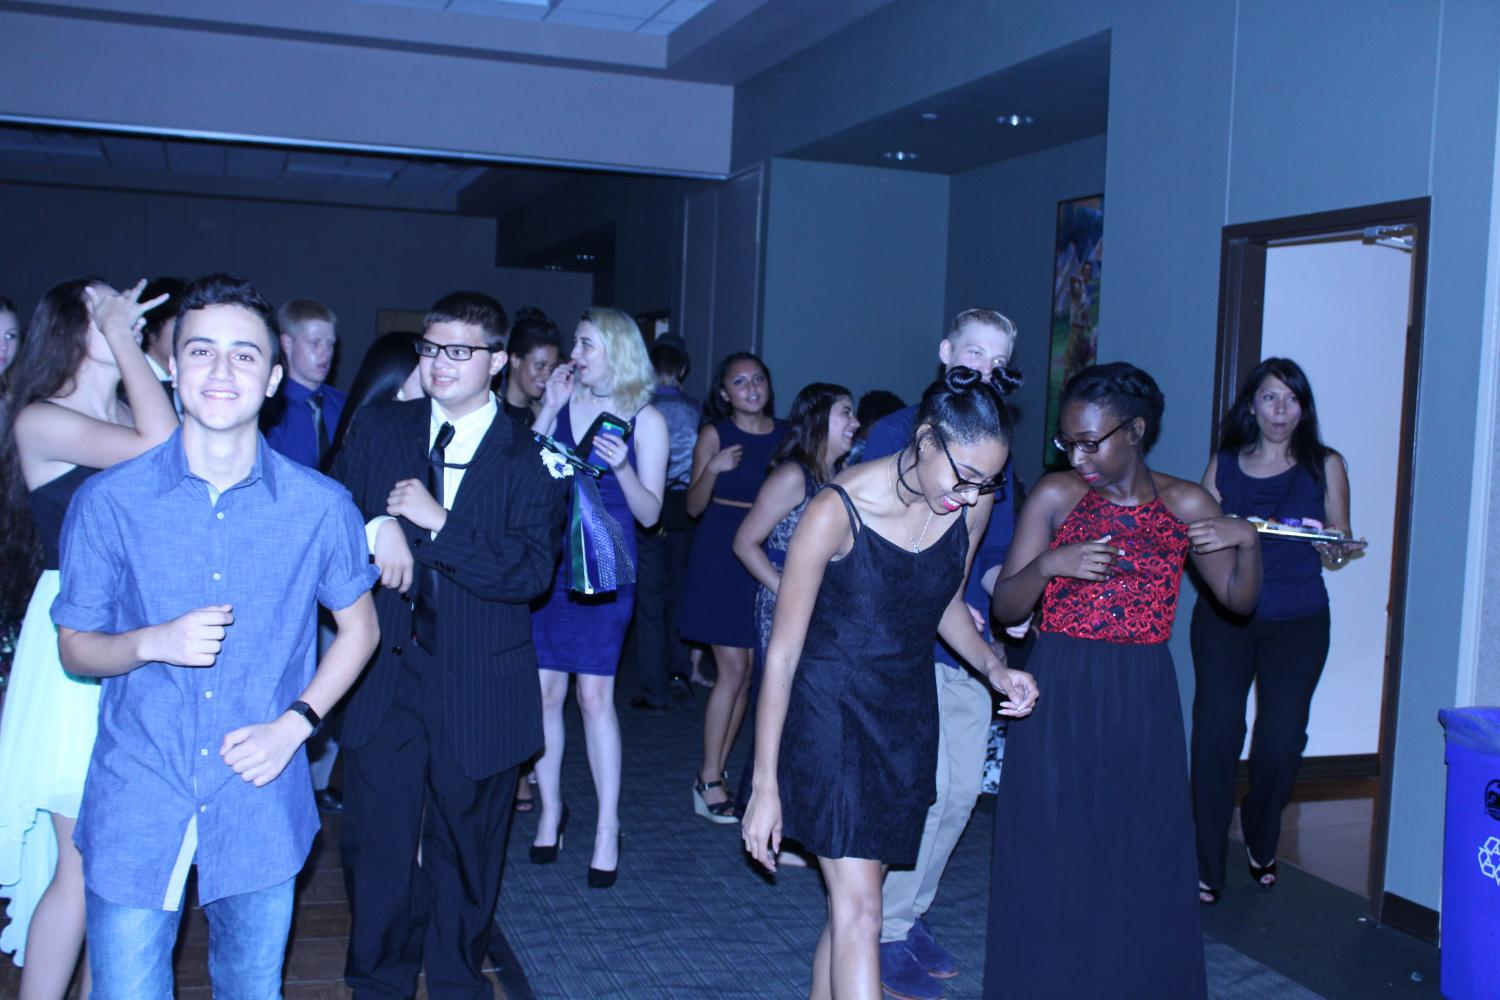 Students at the dance